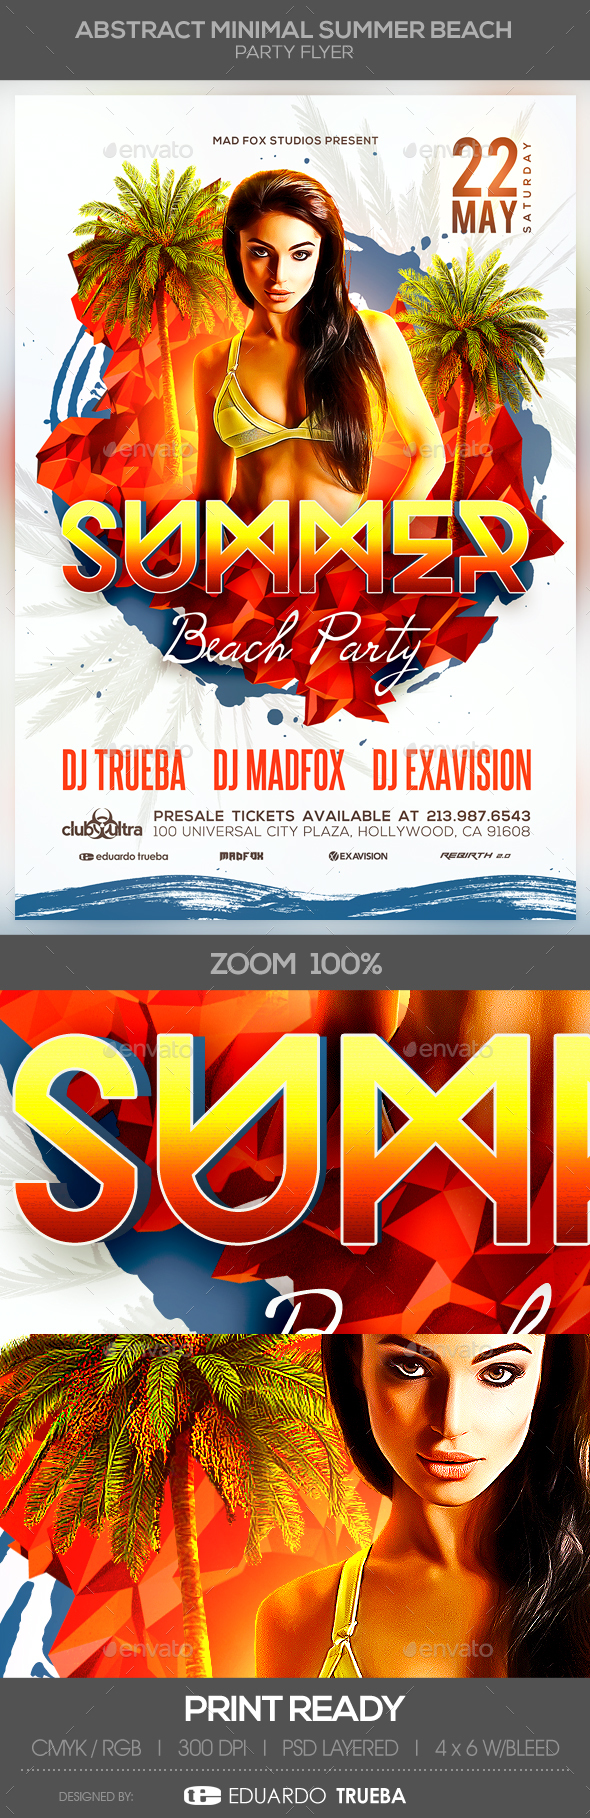 Abstract Minimal Summer Beach Party Flyer - Clubs & Parties Events